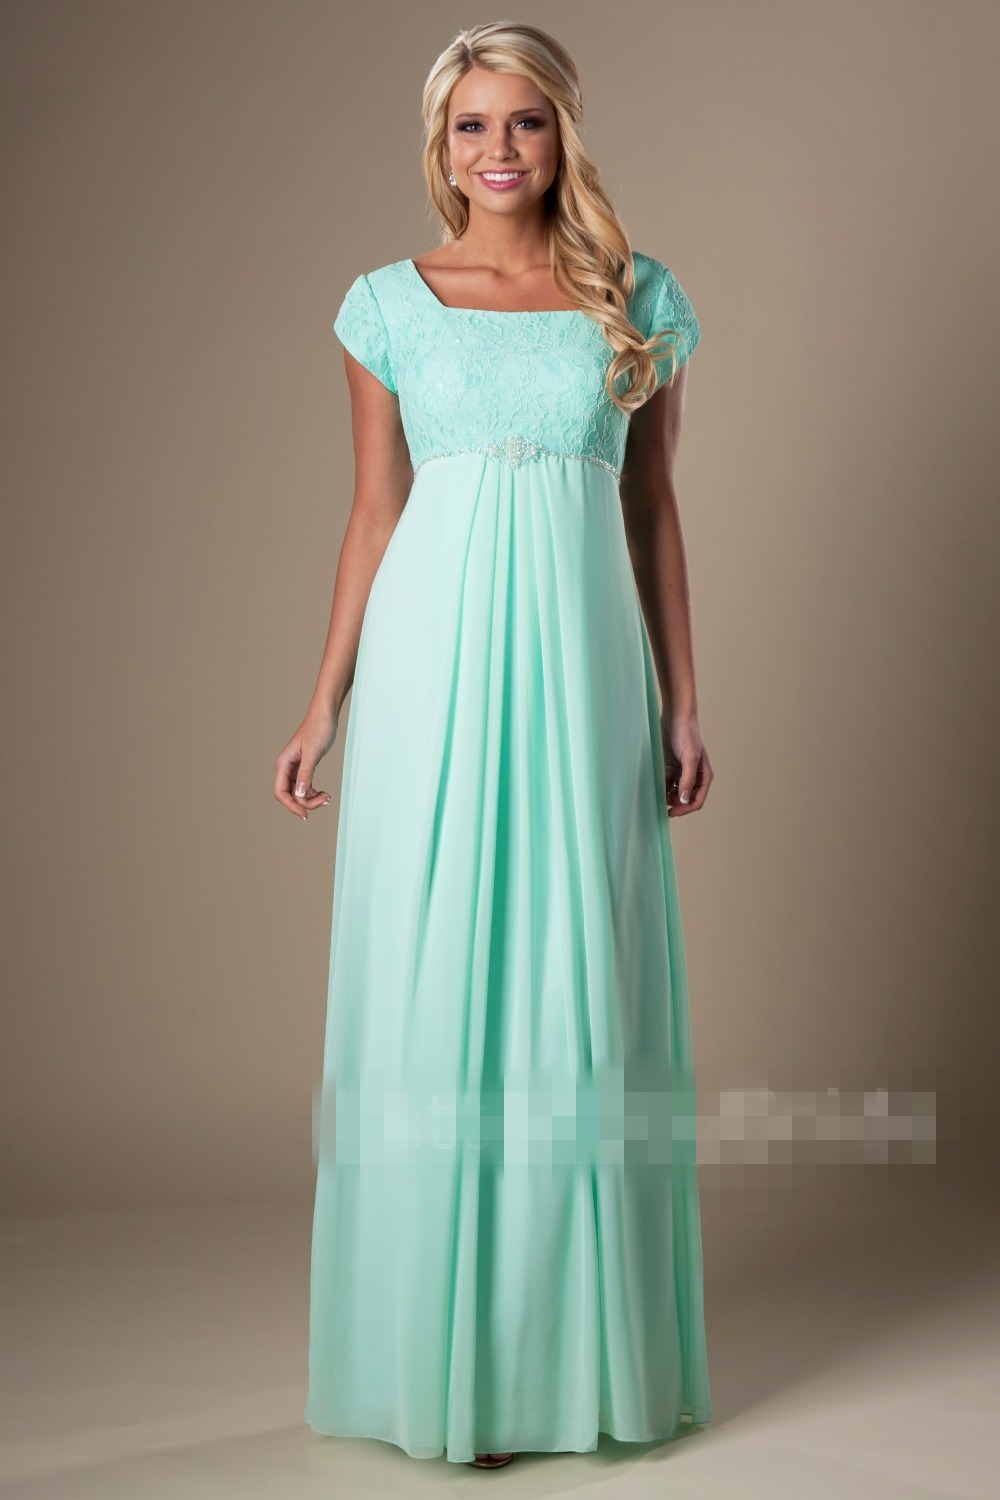 Mint Maternity Modest Bridesmaid Dresses With Sleeves Long Lace ...